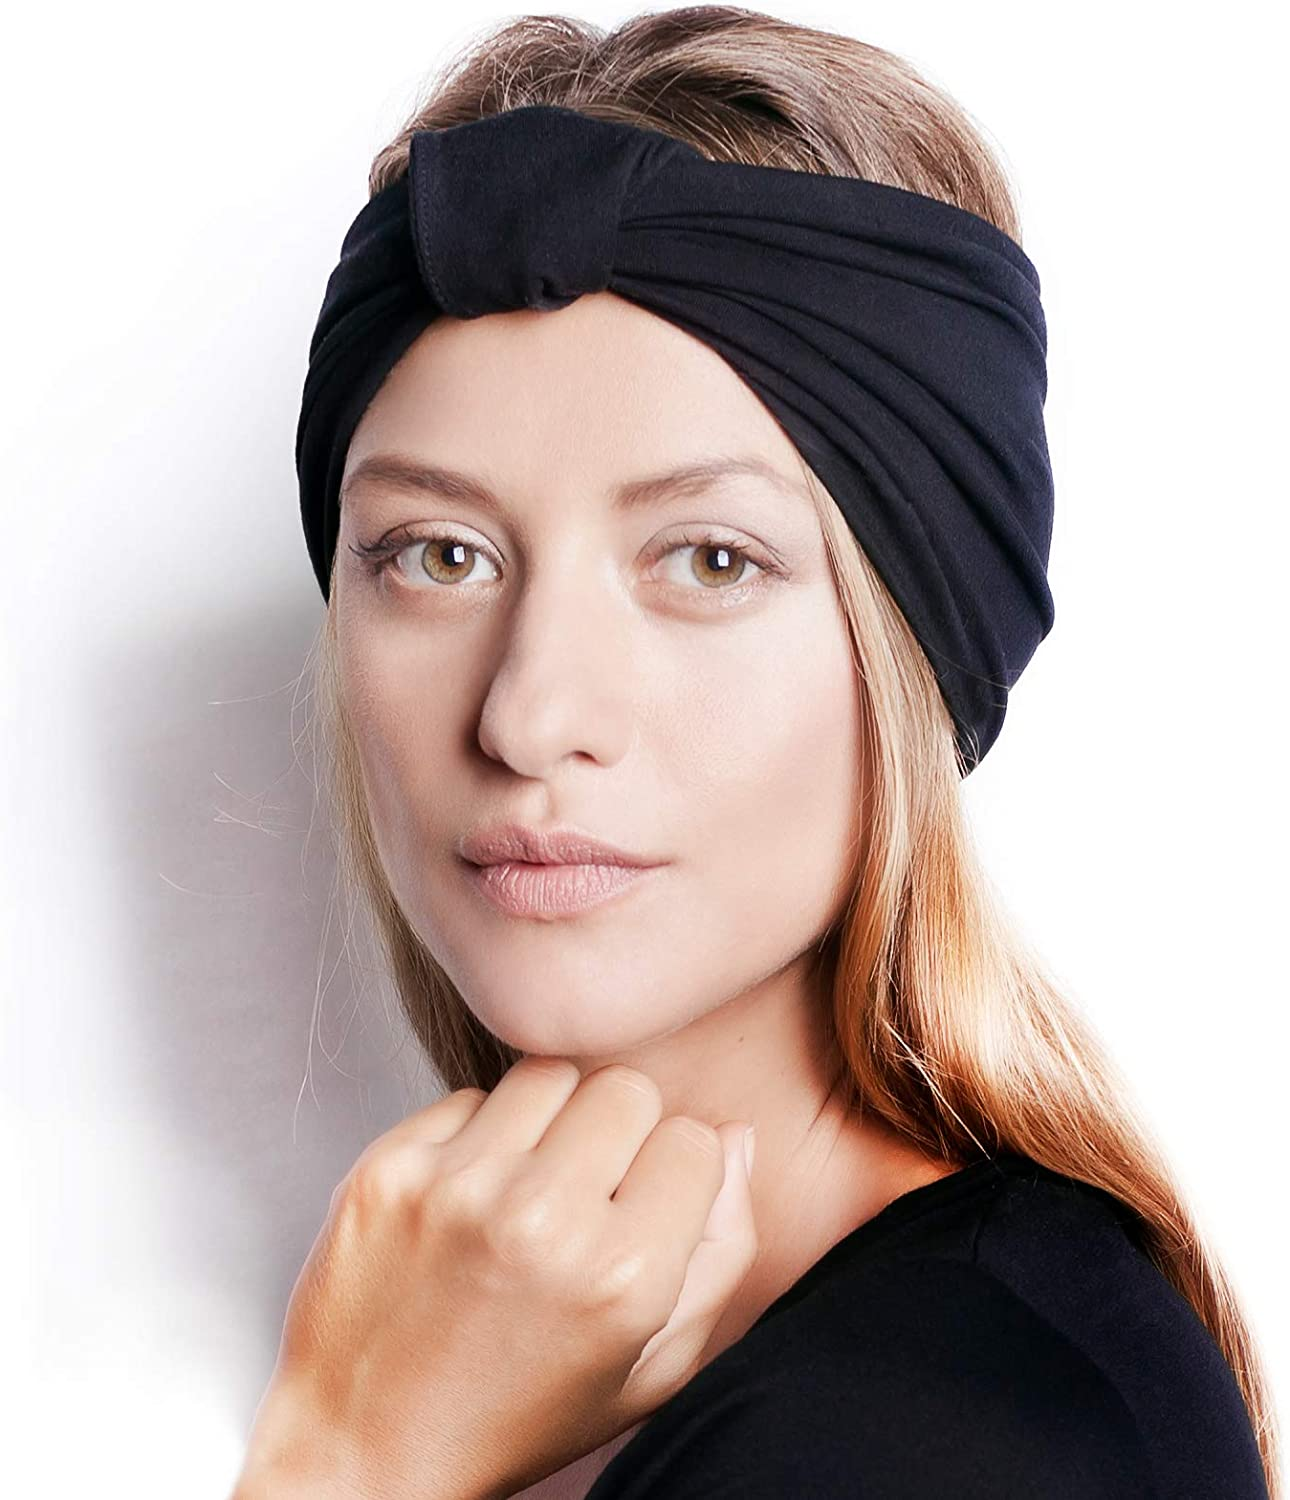 BLOM Original Headbands for Women. Wear for Yoga, Fashion, Working Out, Travel, or Running. Multi Style Design for Hair Styling and Active Living. Wear Wide Turban Knotted. Responsibly Made in Bali.